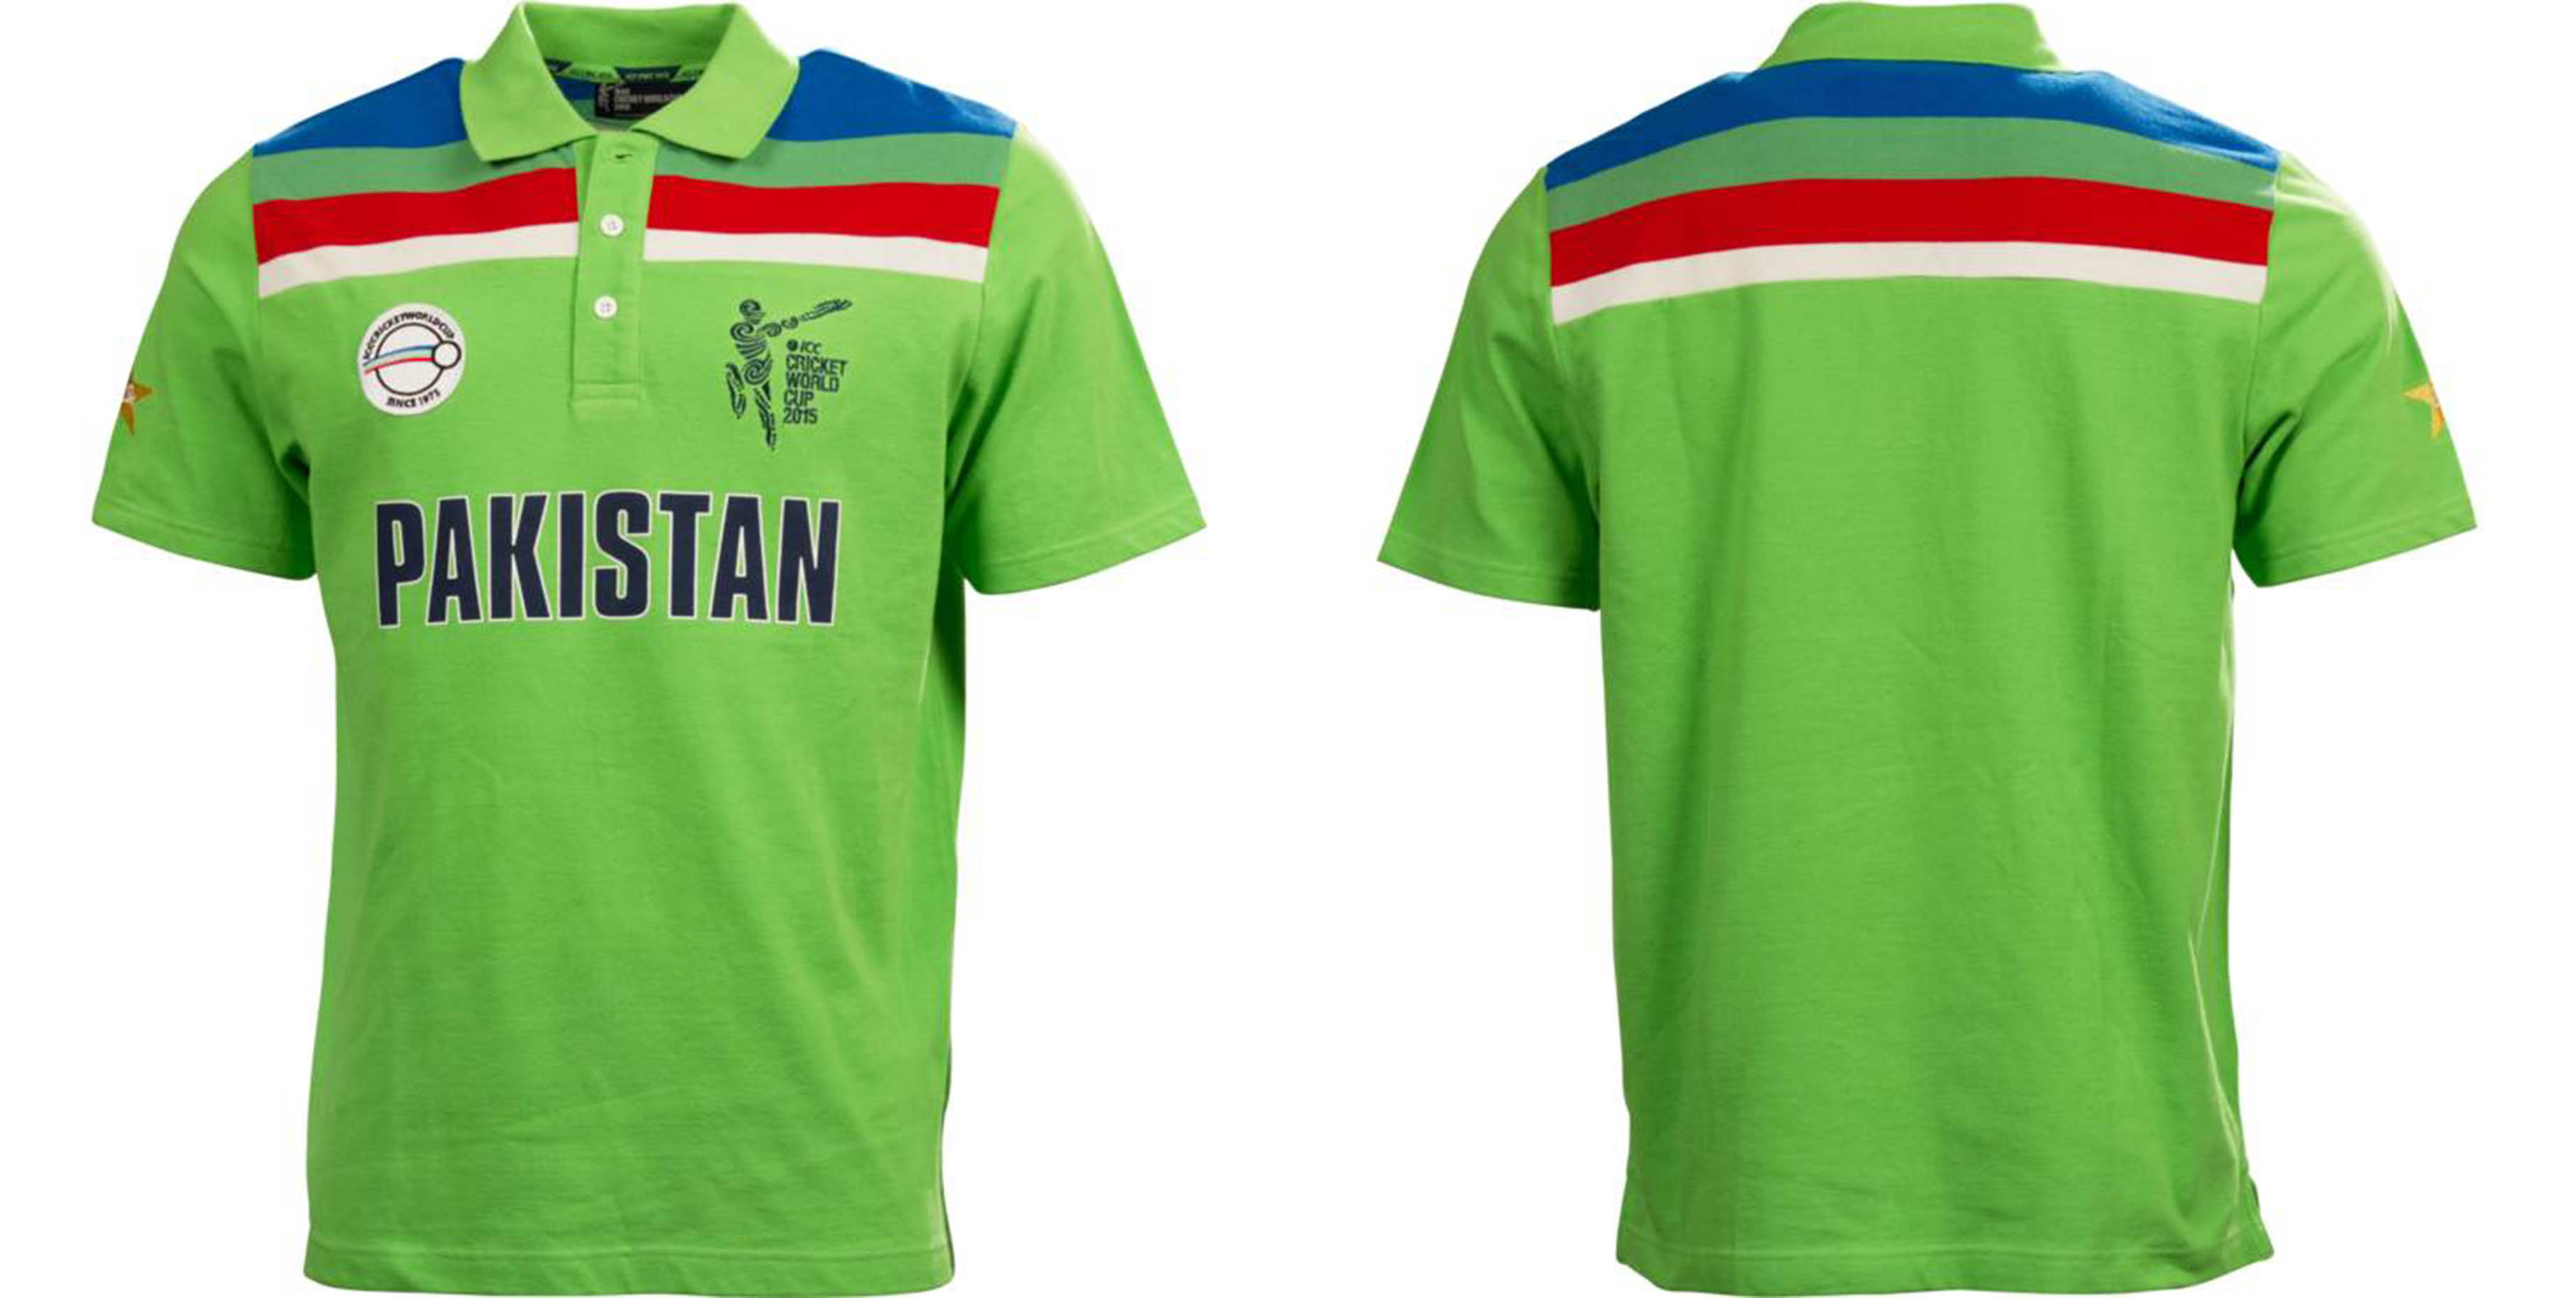 low priced 3ed8d c9cbb ICC Worldcup CWC 2015 Men's Pakistan 1992 Replica Playing ...